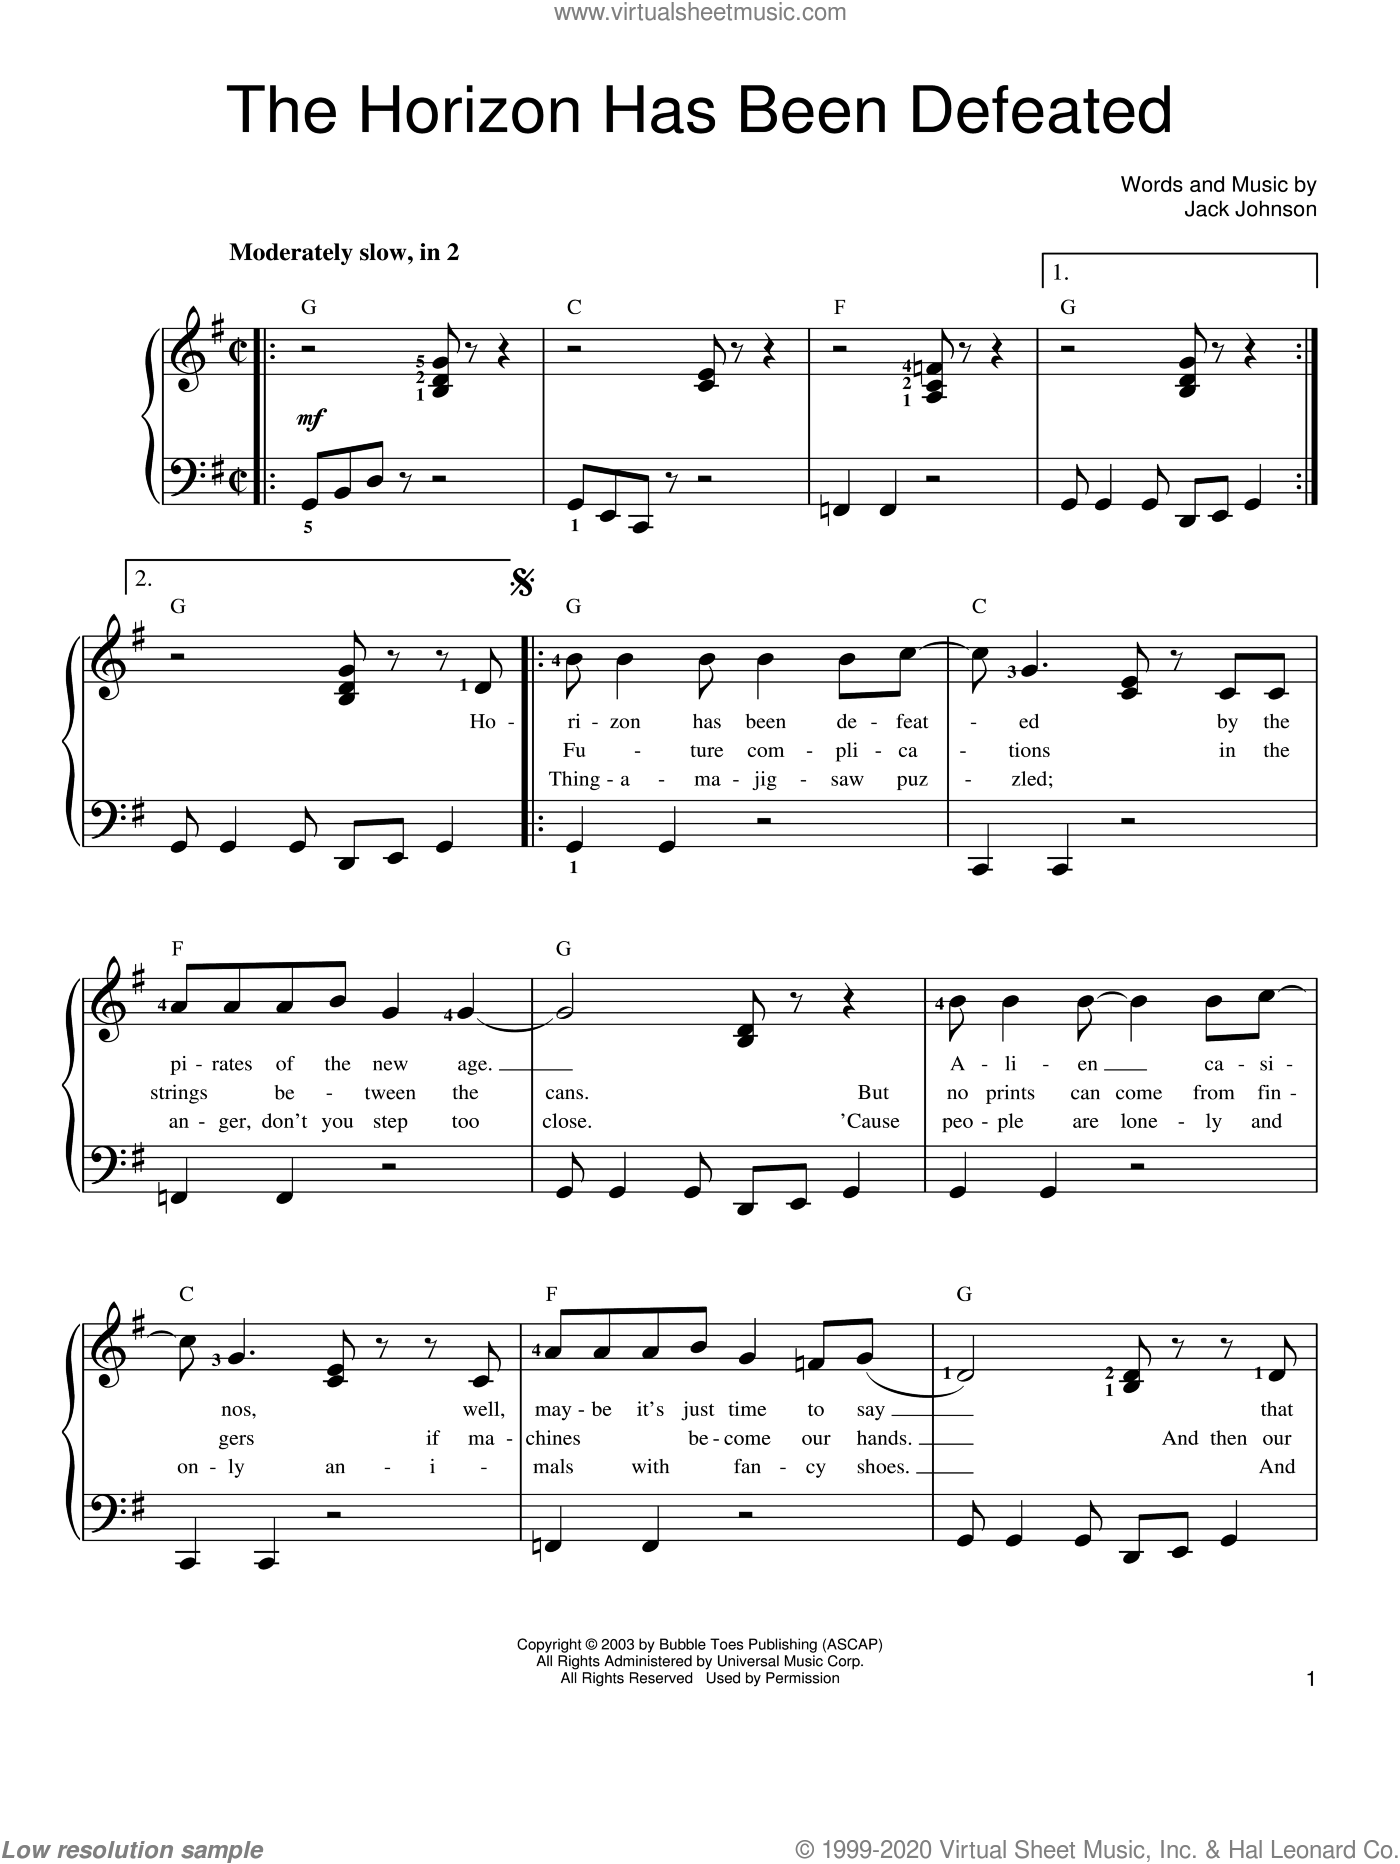 The Horizon Has Been Defeated sheet music for piano solo by Jack Johnson, easy. Score Image Preview.